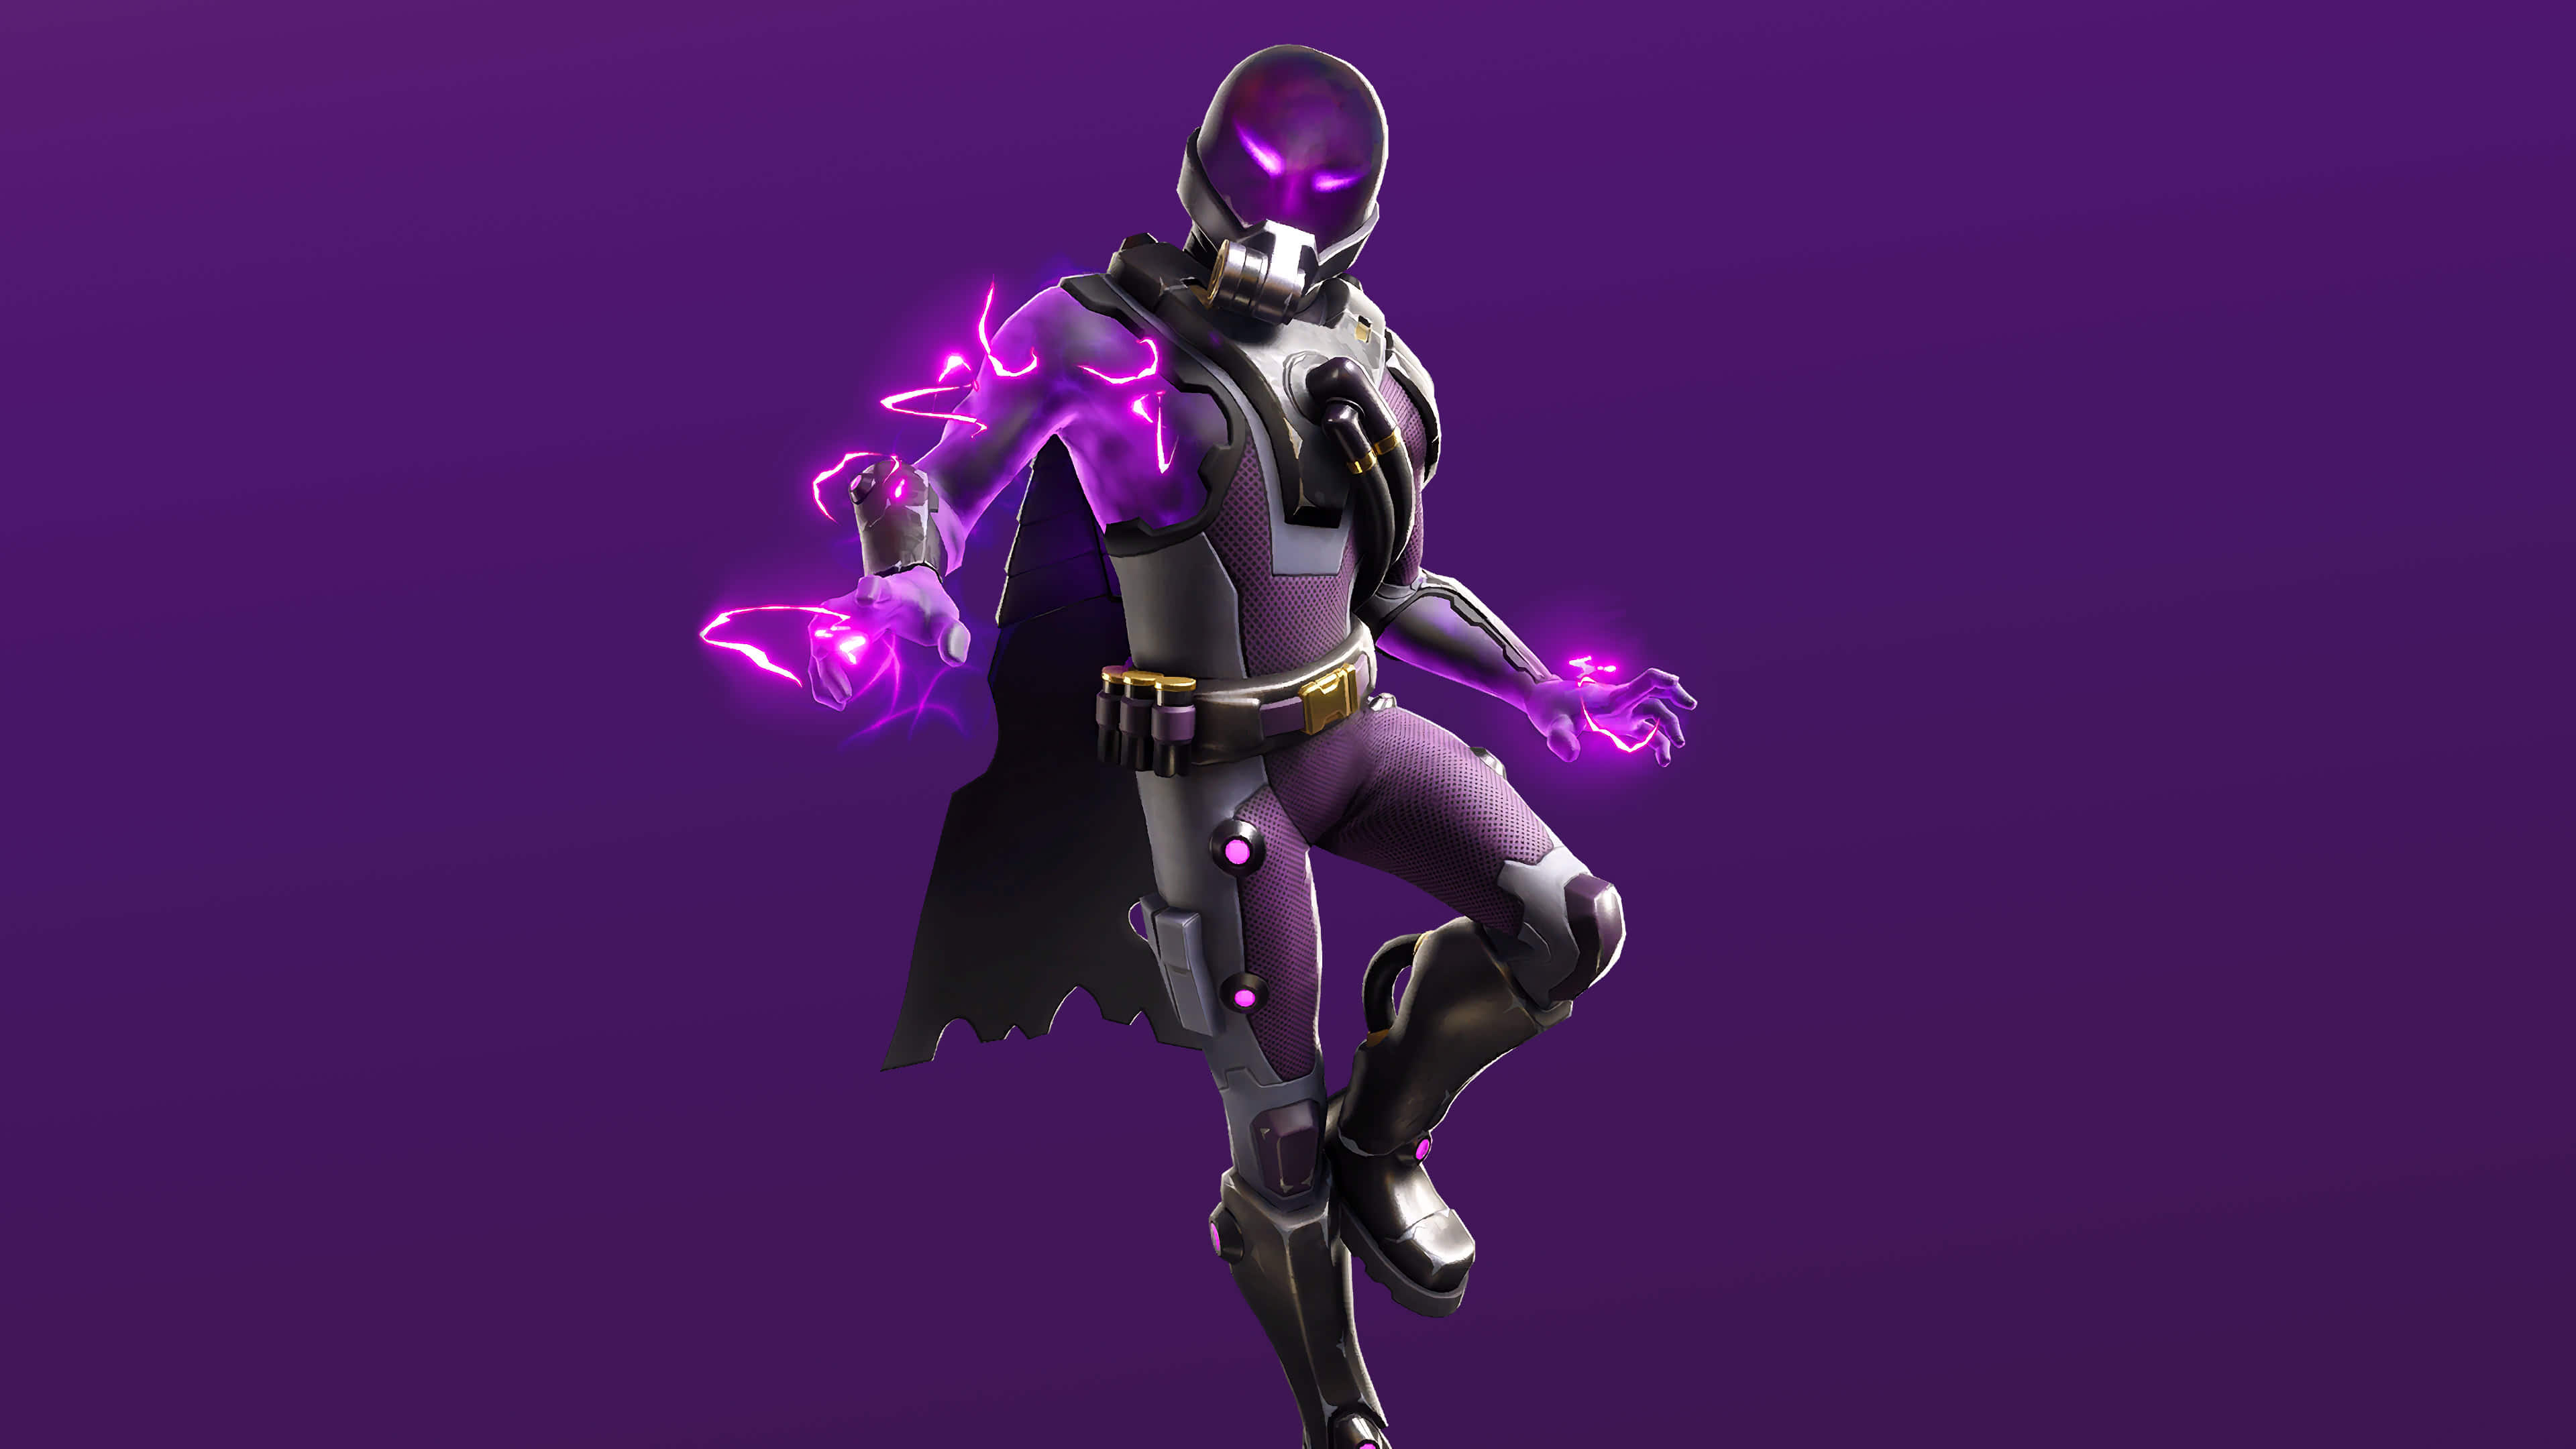 fortnite raging storm set tempest skin outfit uhd 4k wallpaper